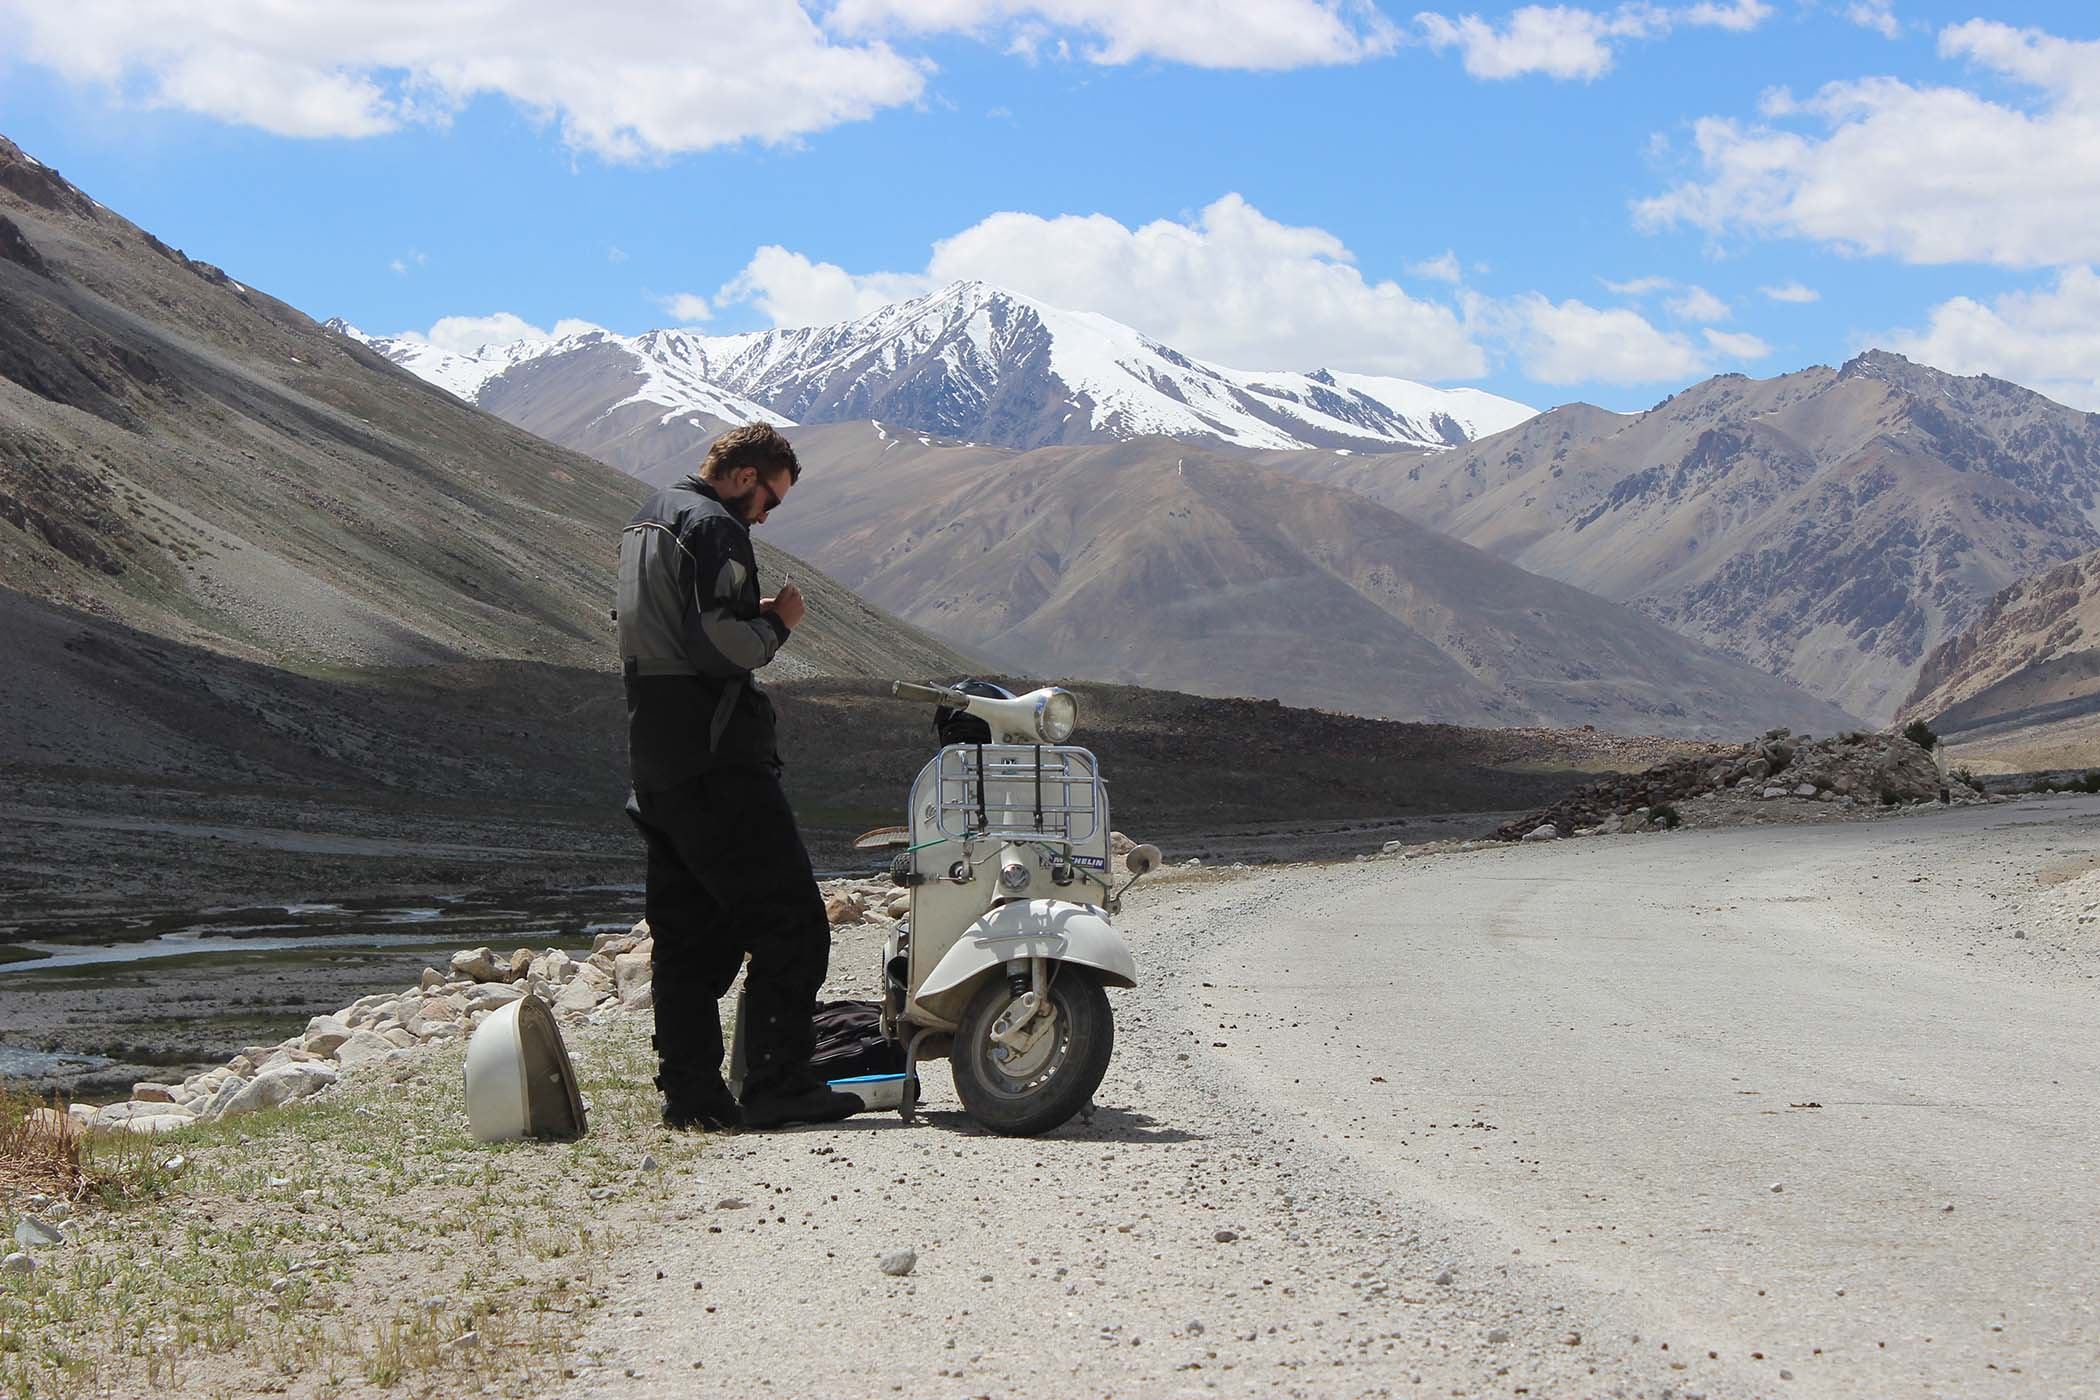 Tuning the Vespa in Tajikistan